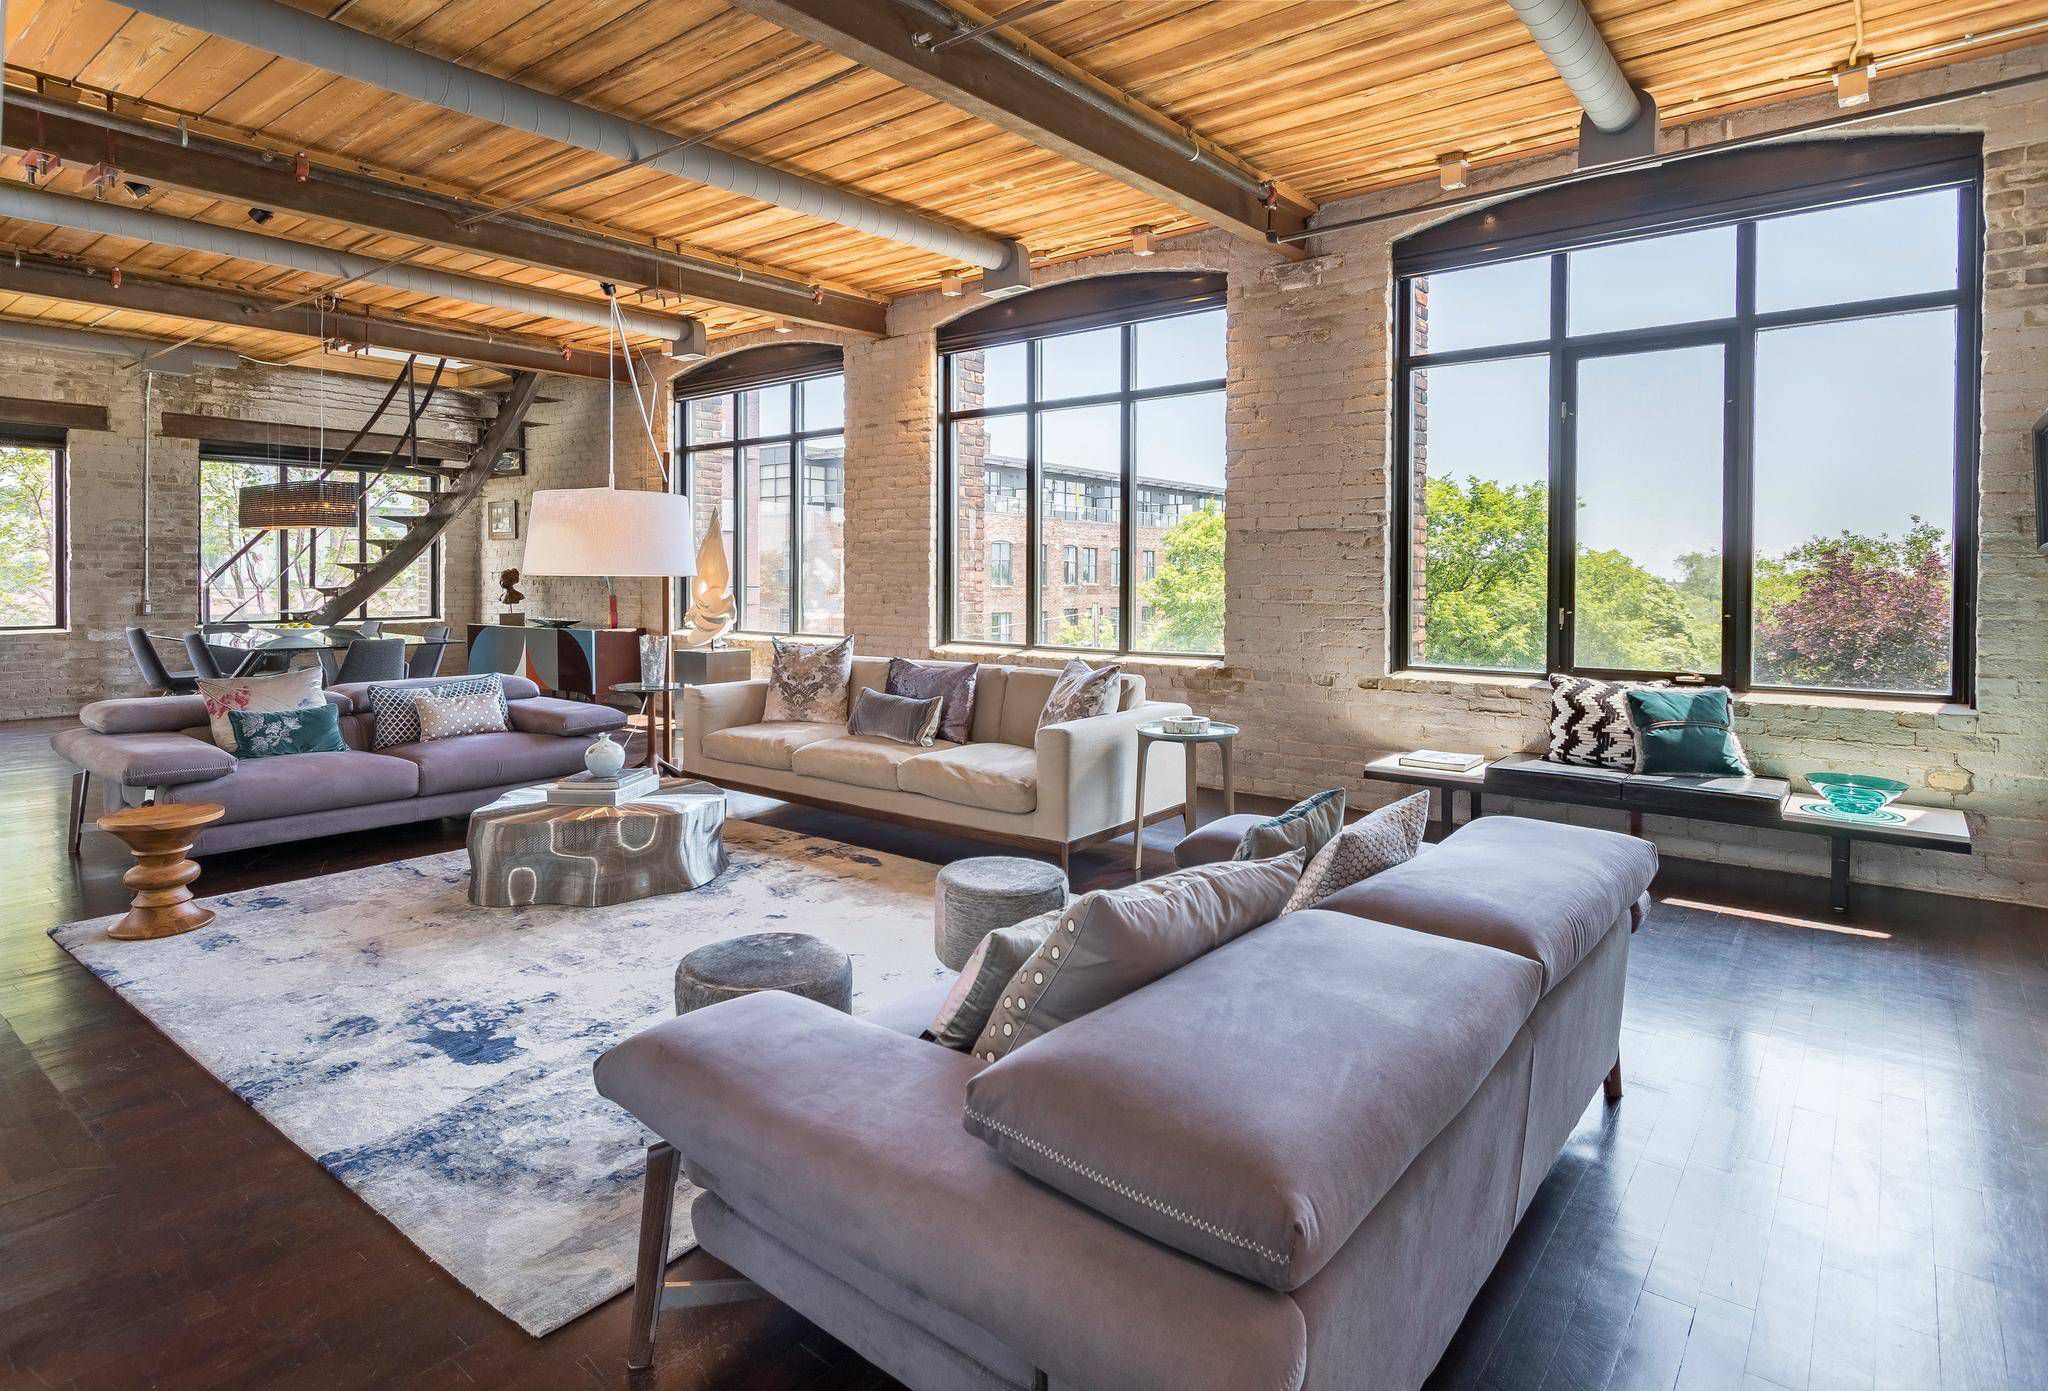 Home Of The Week Toronto Loft Living With A Room